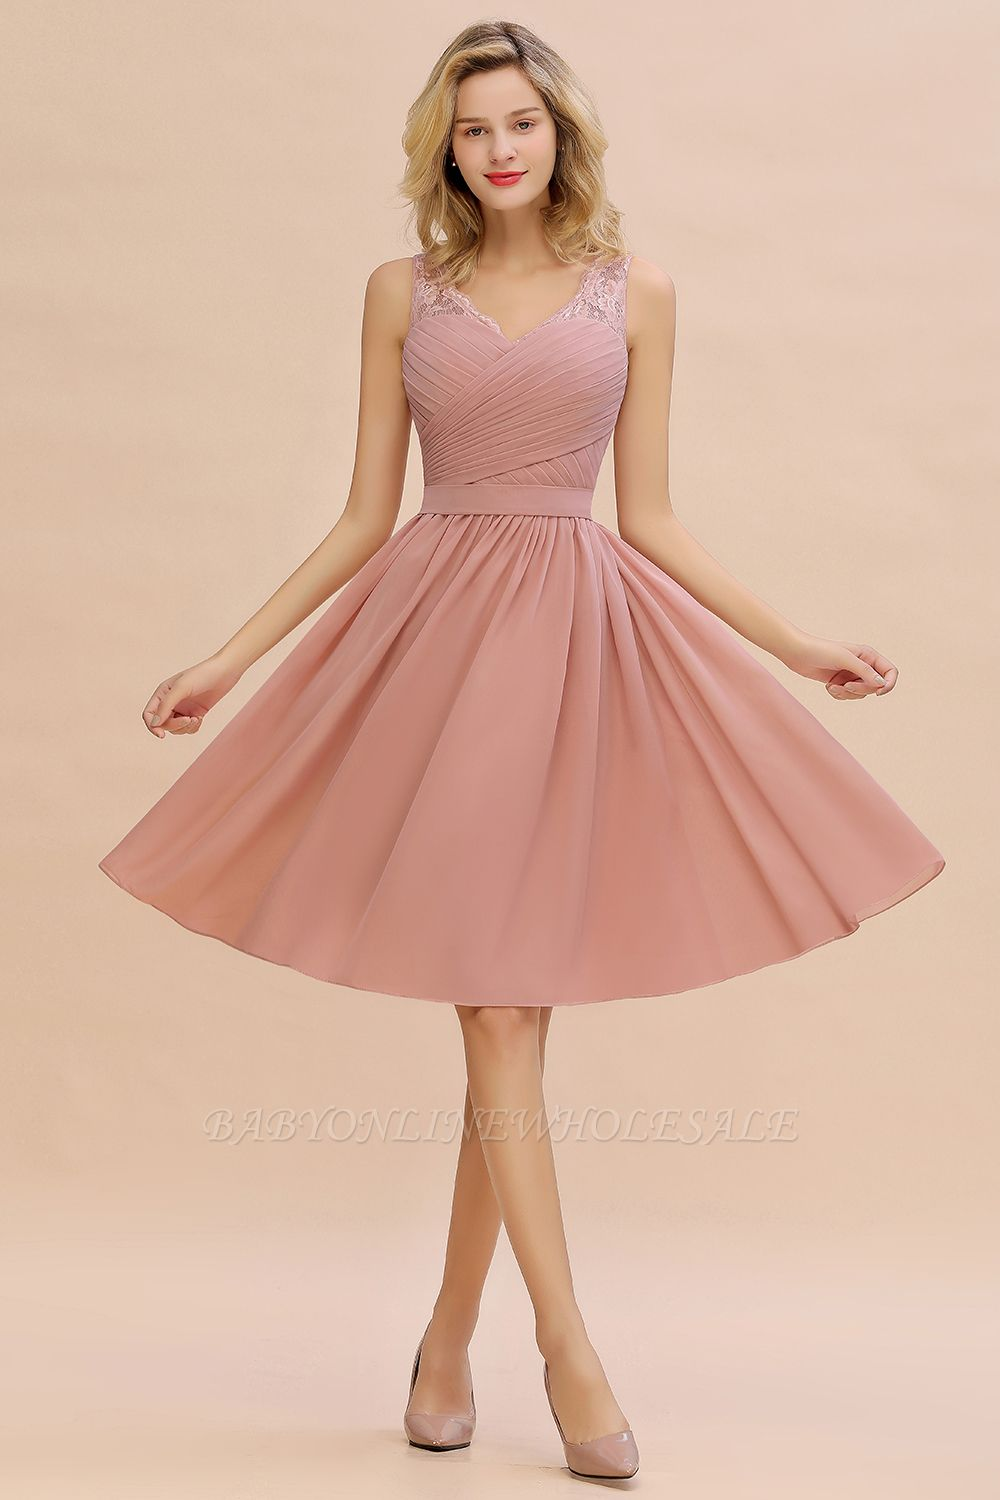 Lace V-neck Long Short Homecoming Dresses with Belt | Sexy Sleeveless V-back Pink Knee length Cocktail Dress